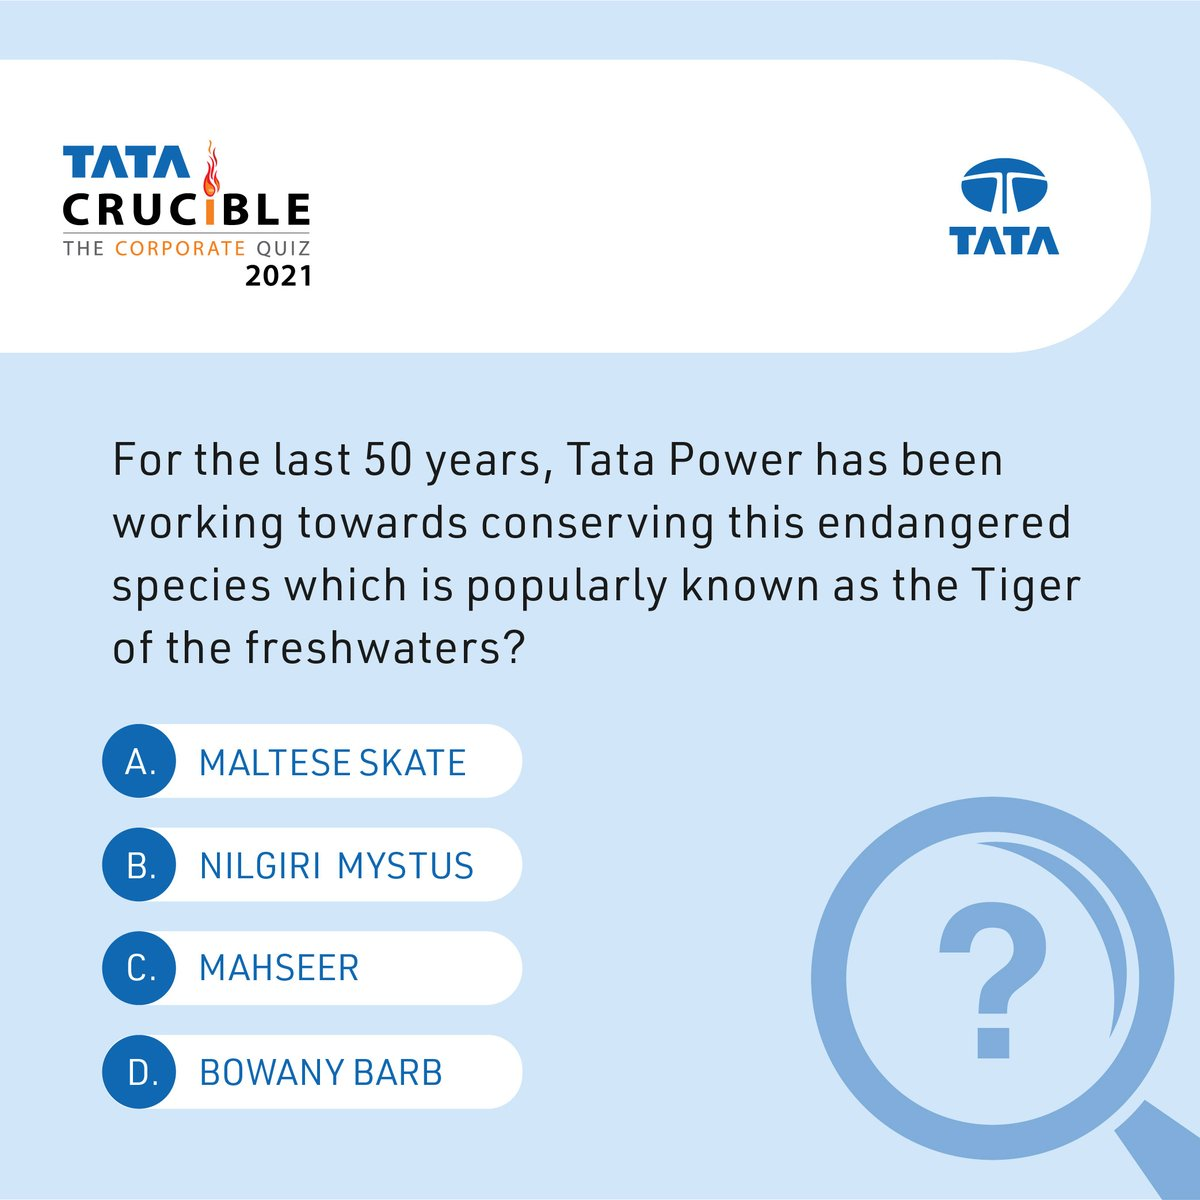 It's time for the weekly#TataCrucibleContest! Just answer this question and stand a chance to win a prize*.#Contest#ContestAlert#SustainabilityMonth *T&C apply. https://t.co/jRt4qM8bHP